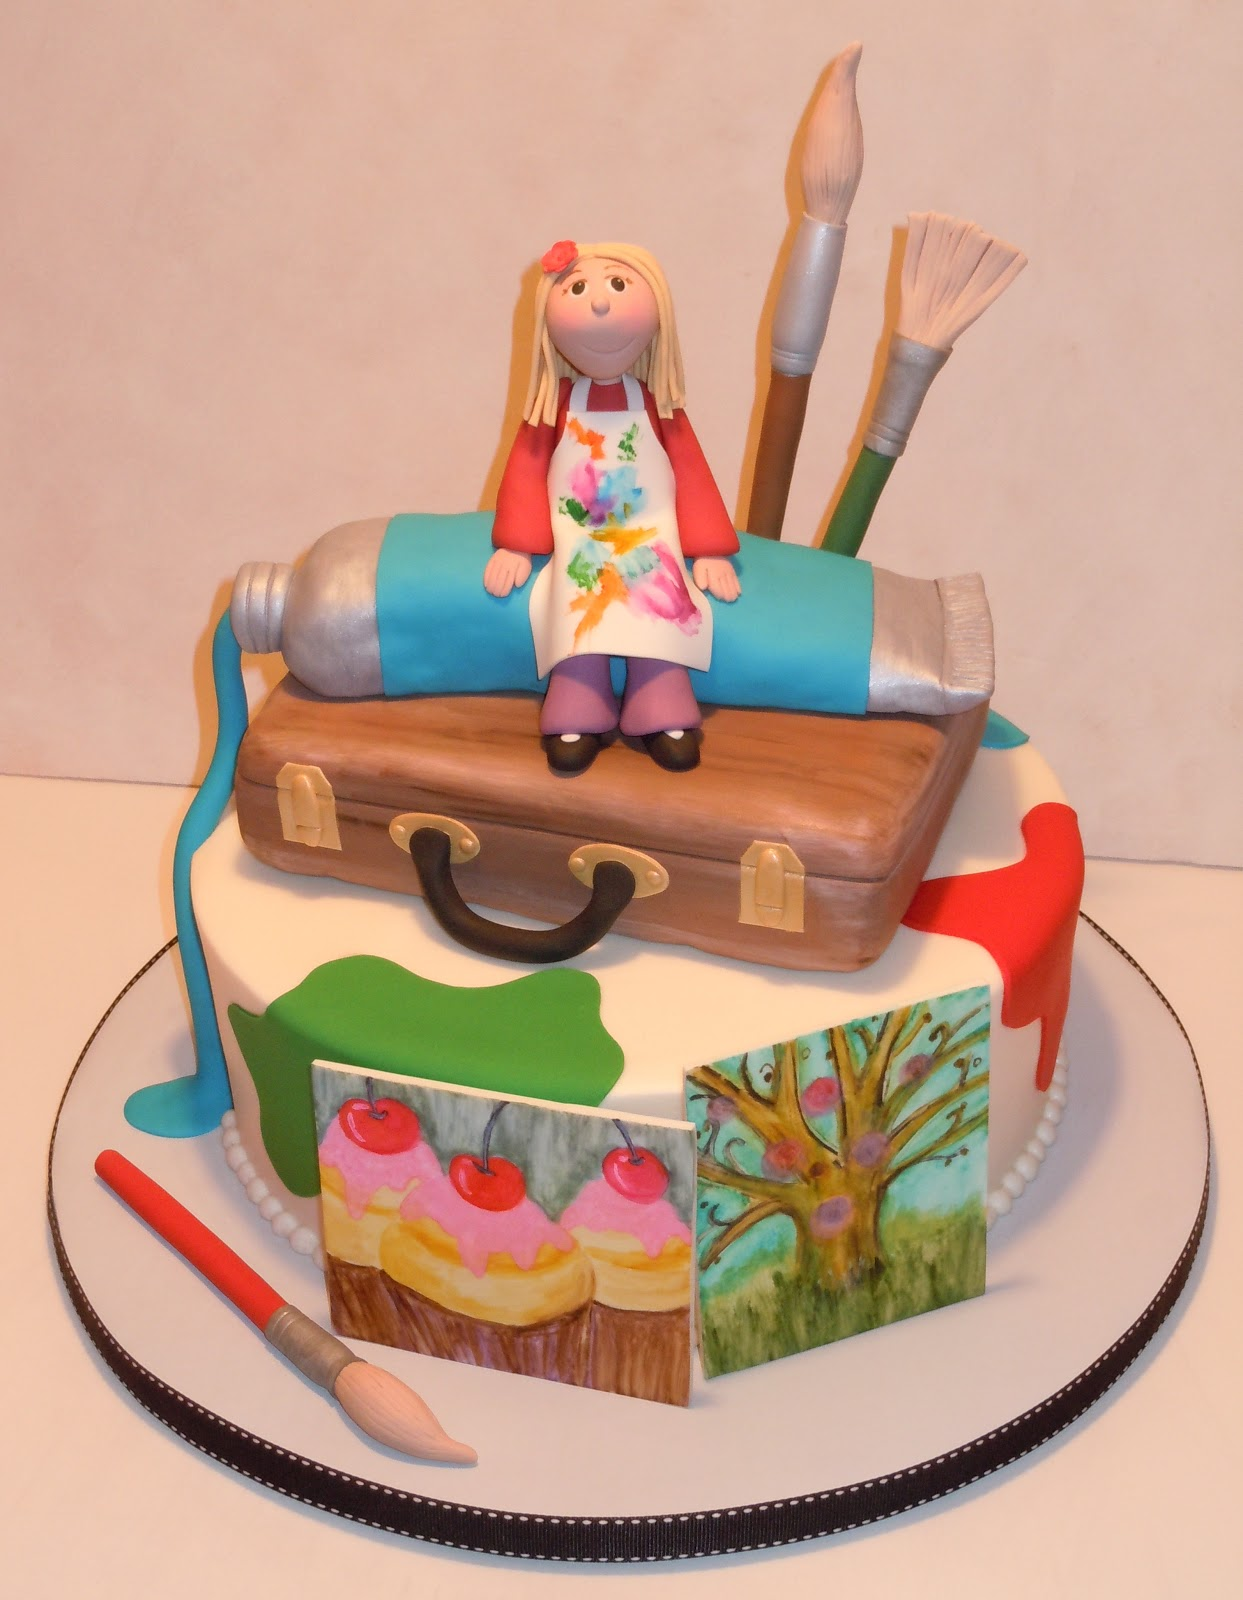 Cake Artist : Kids Birthday cakes on Pinterest Rainbow Cakes, Artist ...